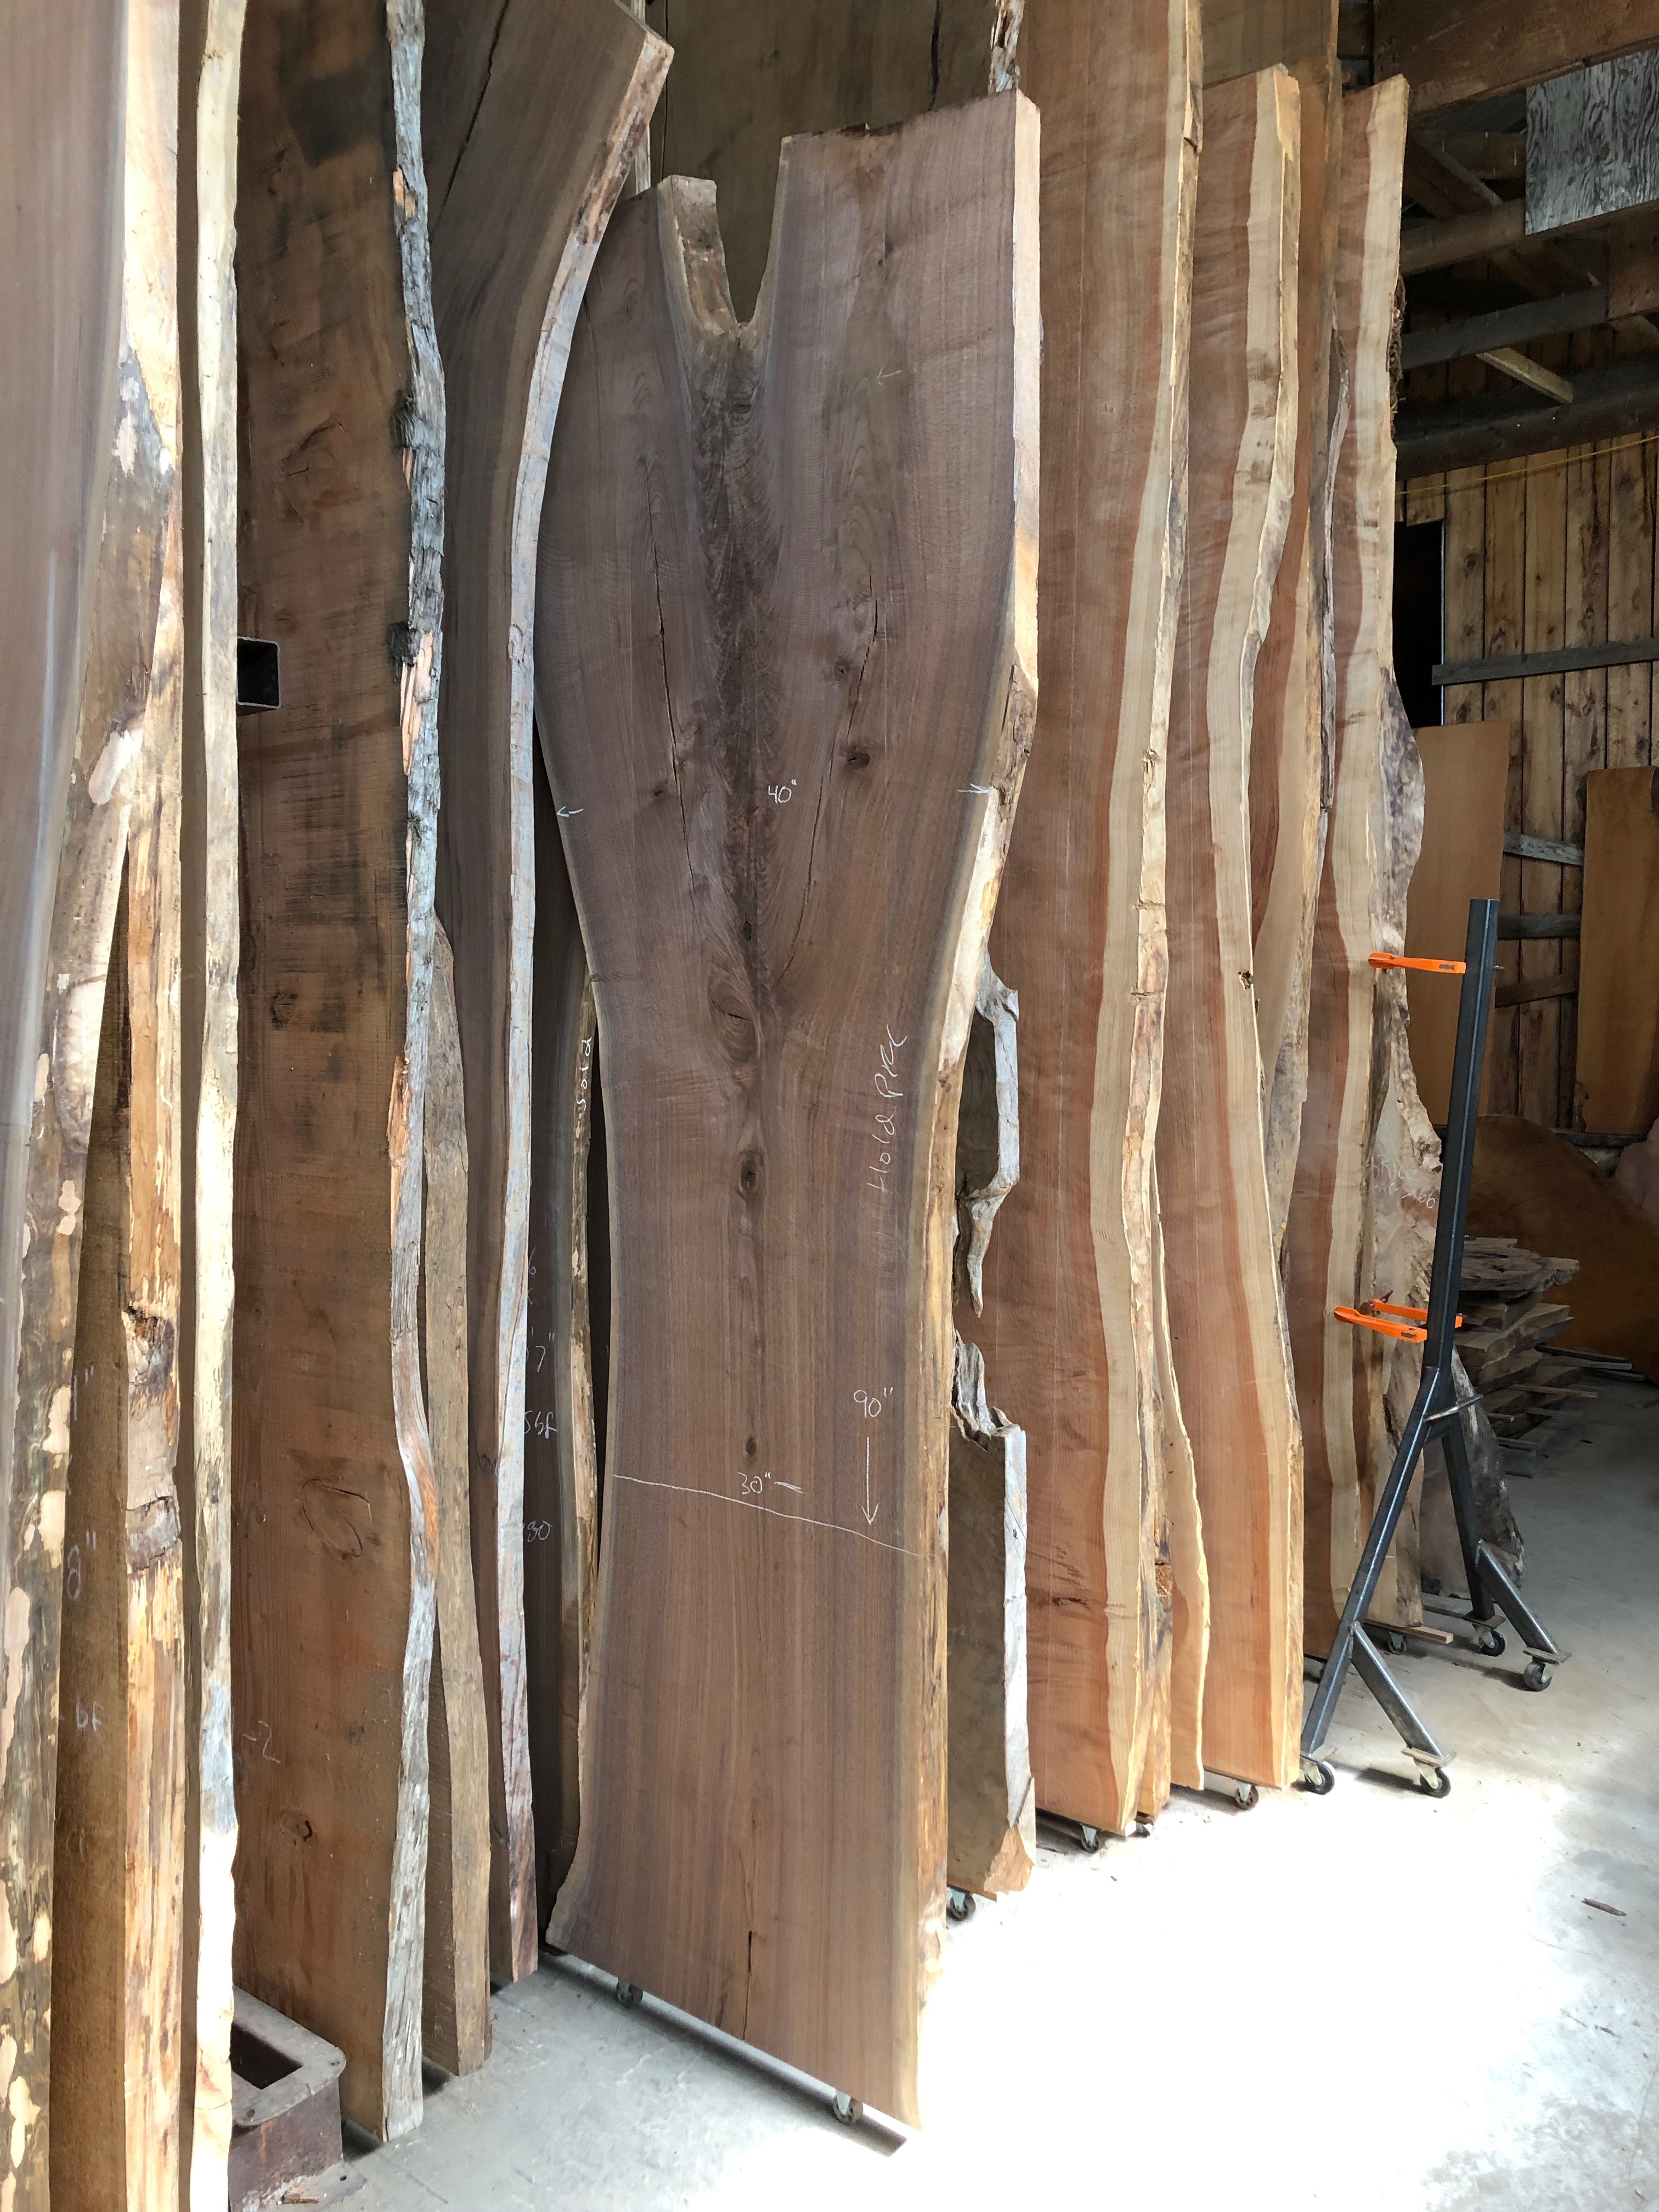 live-edge-wood-slabs-stacked